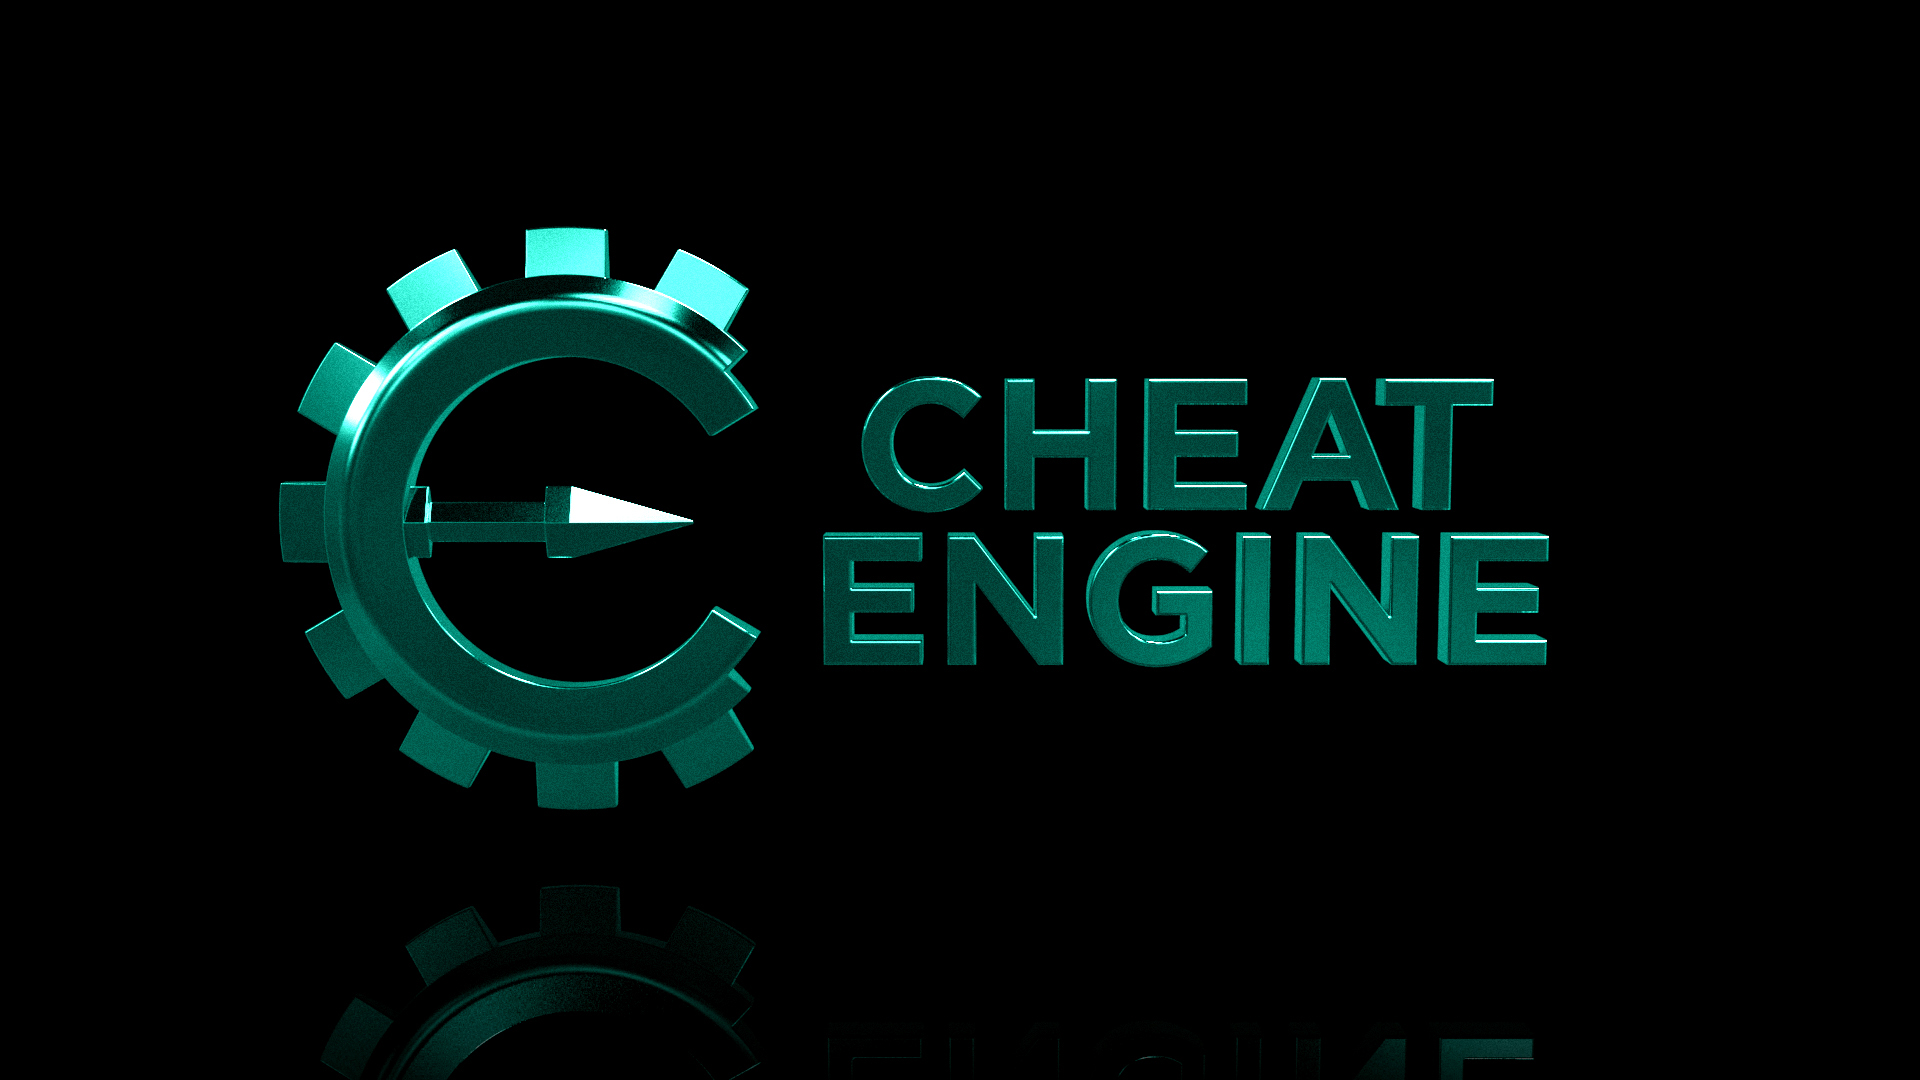 Download Cheat Engine Free